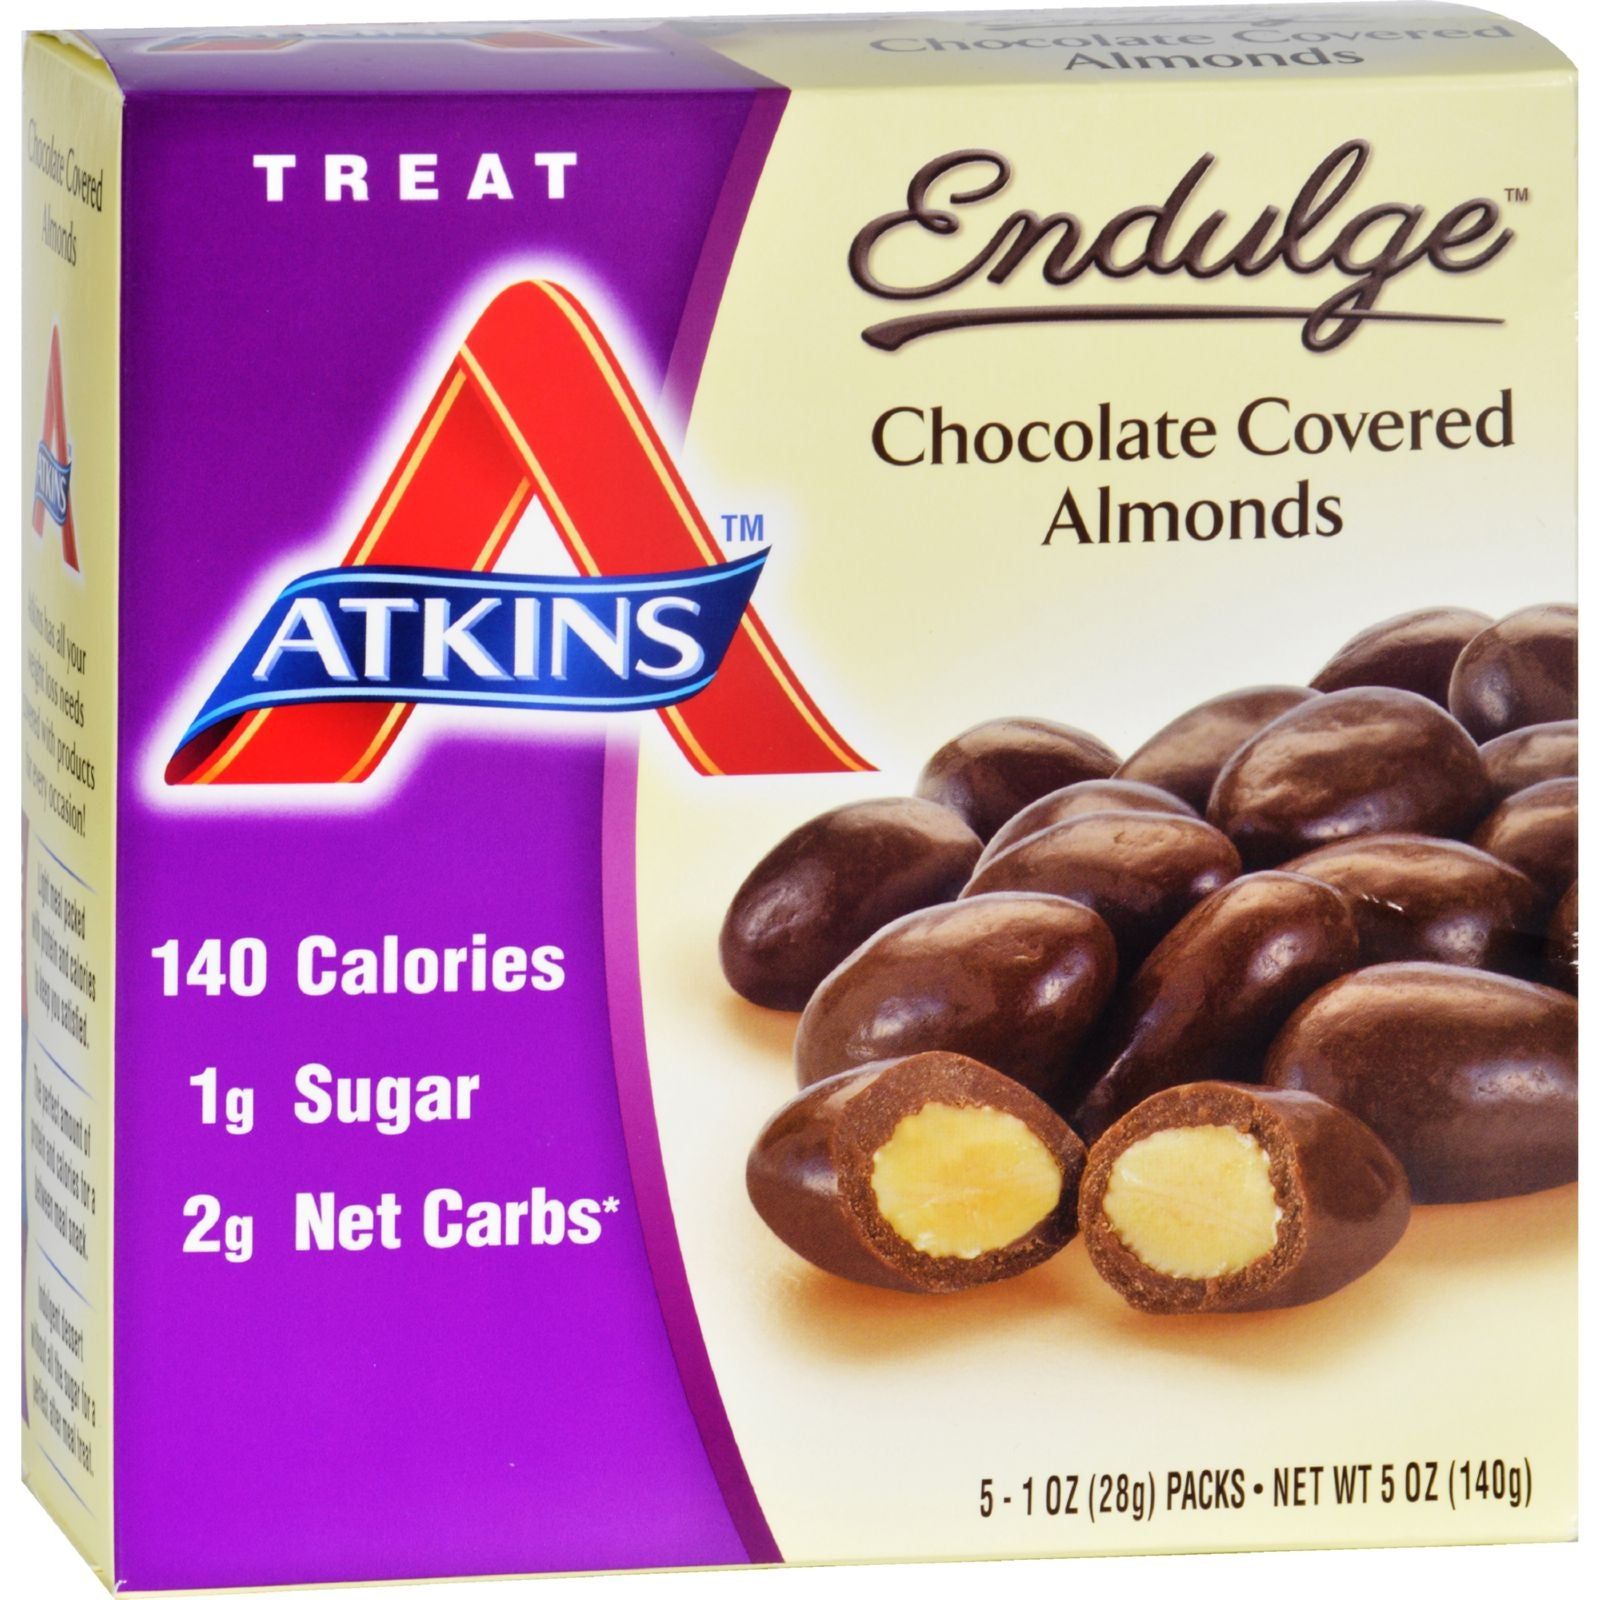 Atkins Endulge Pieces - Chocolate Covered Almonds - 5 Ct - 1 Oz HG1583590